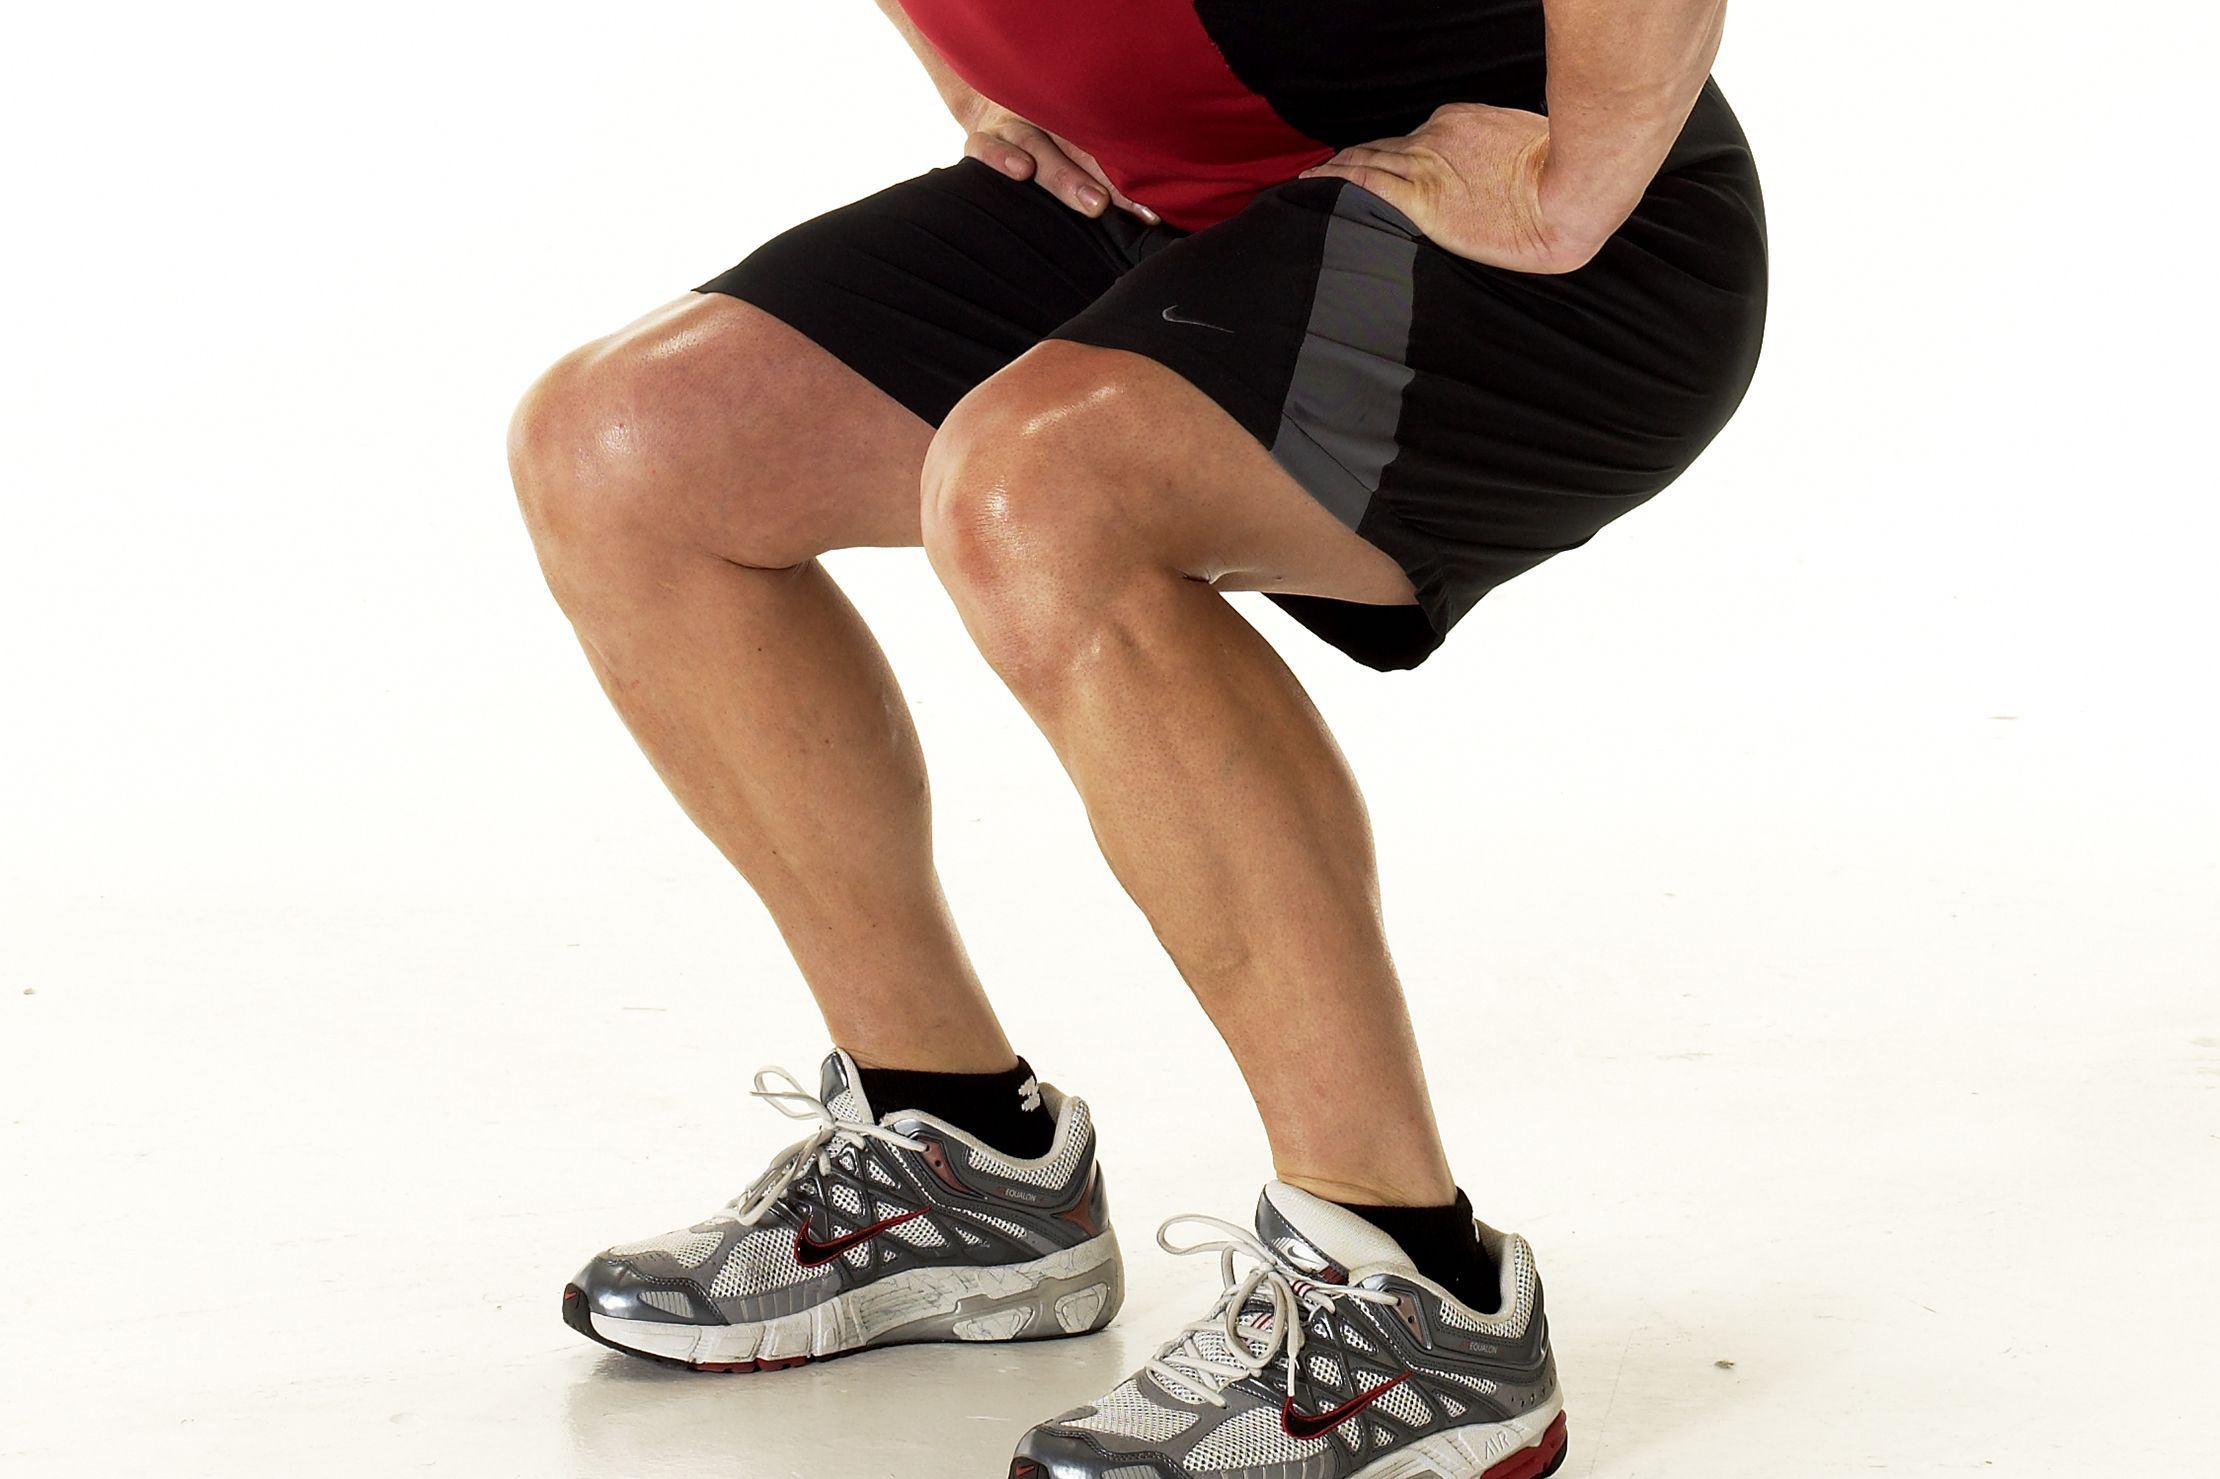 Preventing Iliotibial Band Syndrome